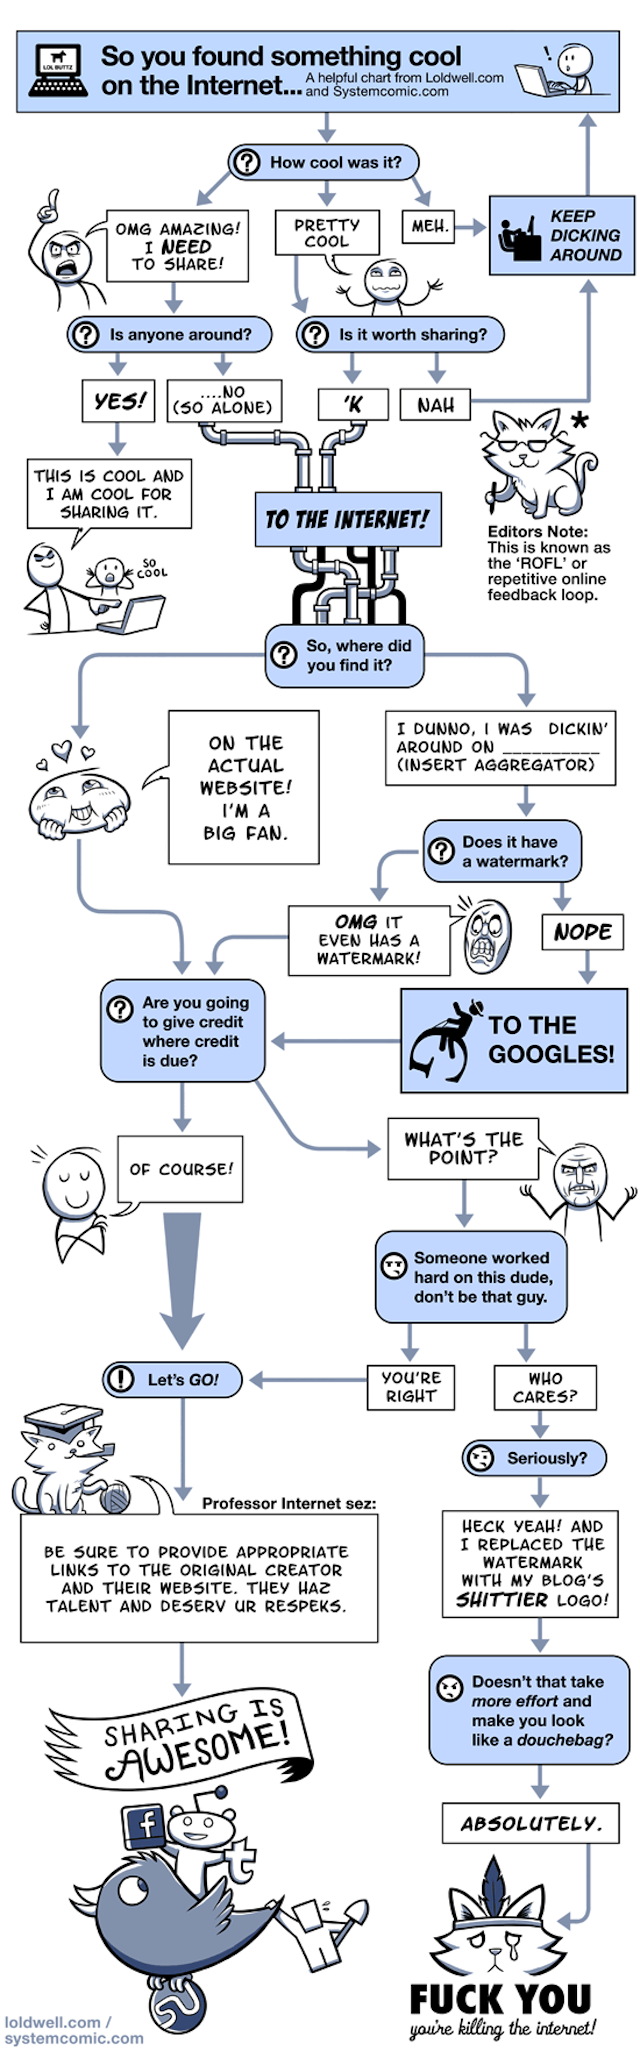 What to Do When You Find Something Cool on the Internet: A Flowchart